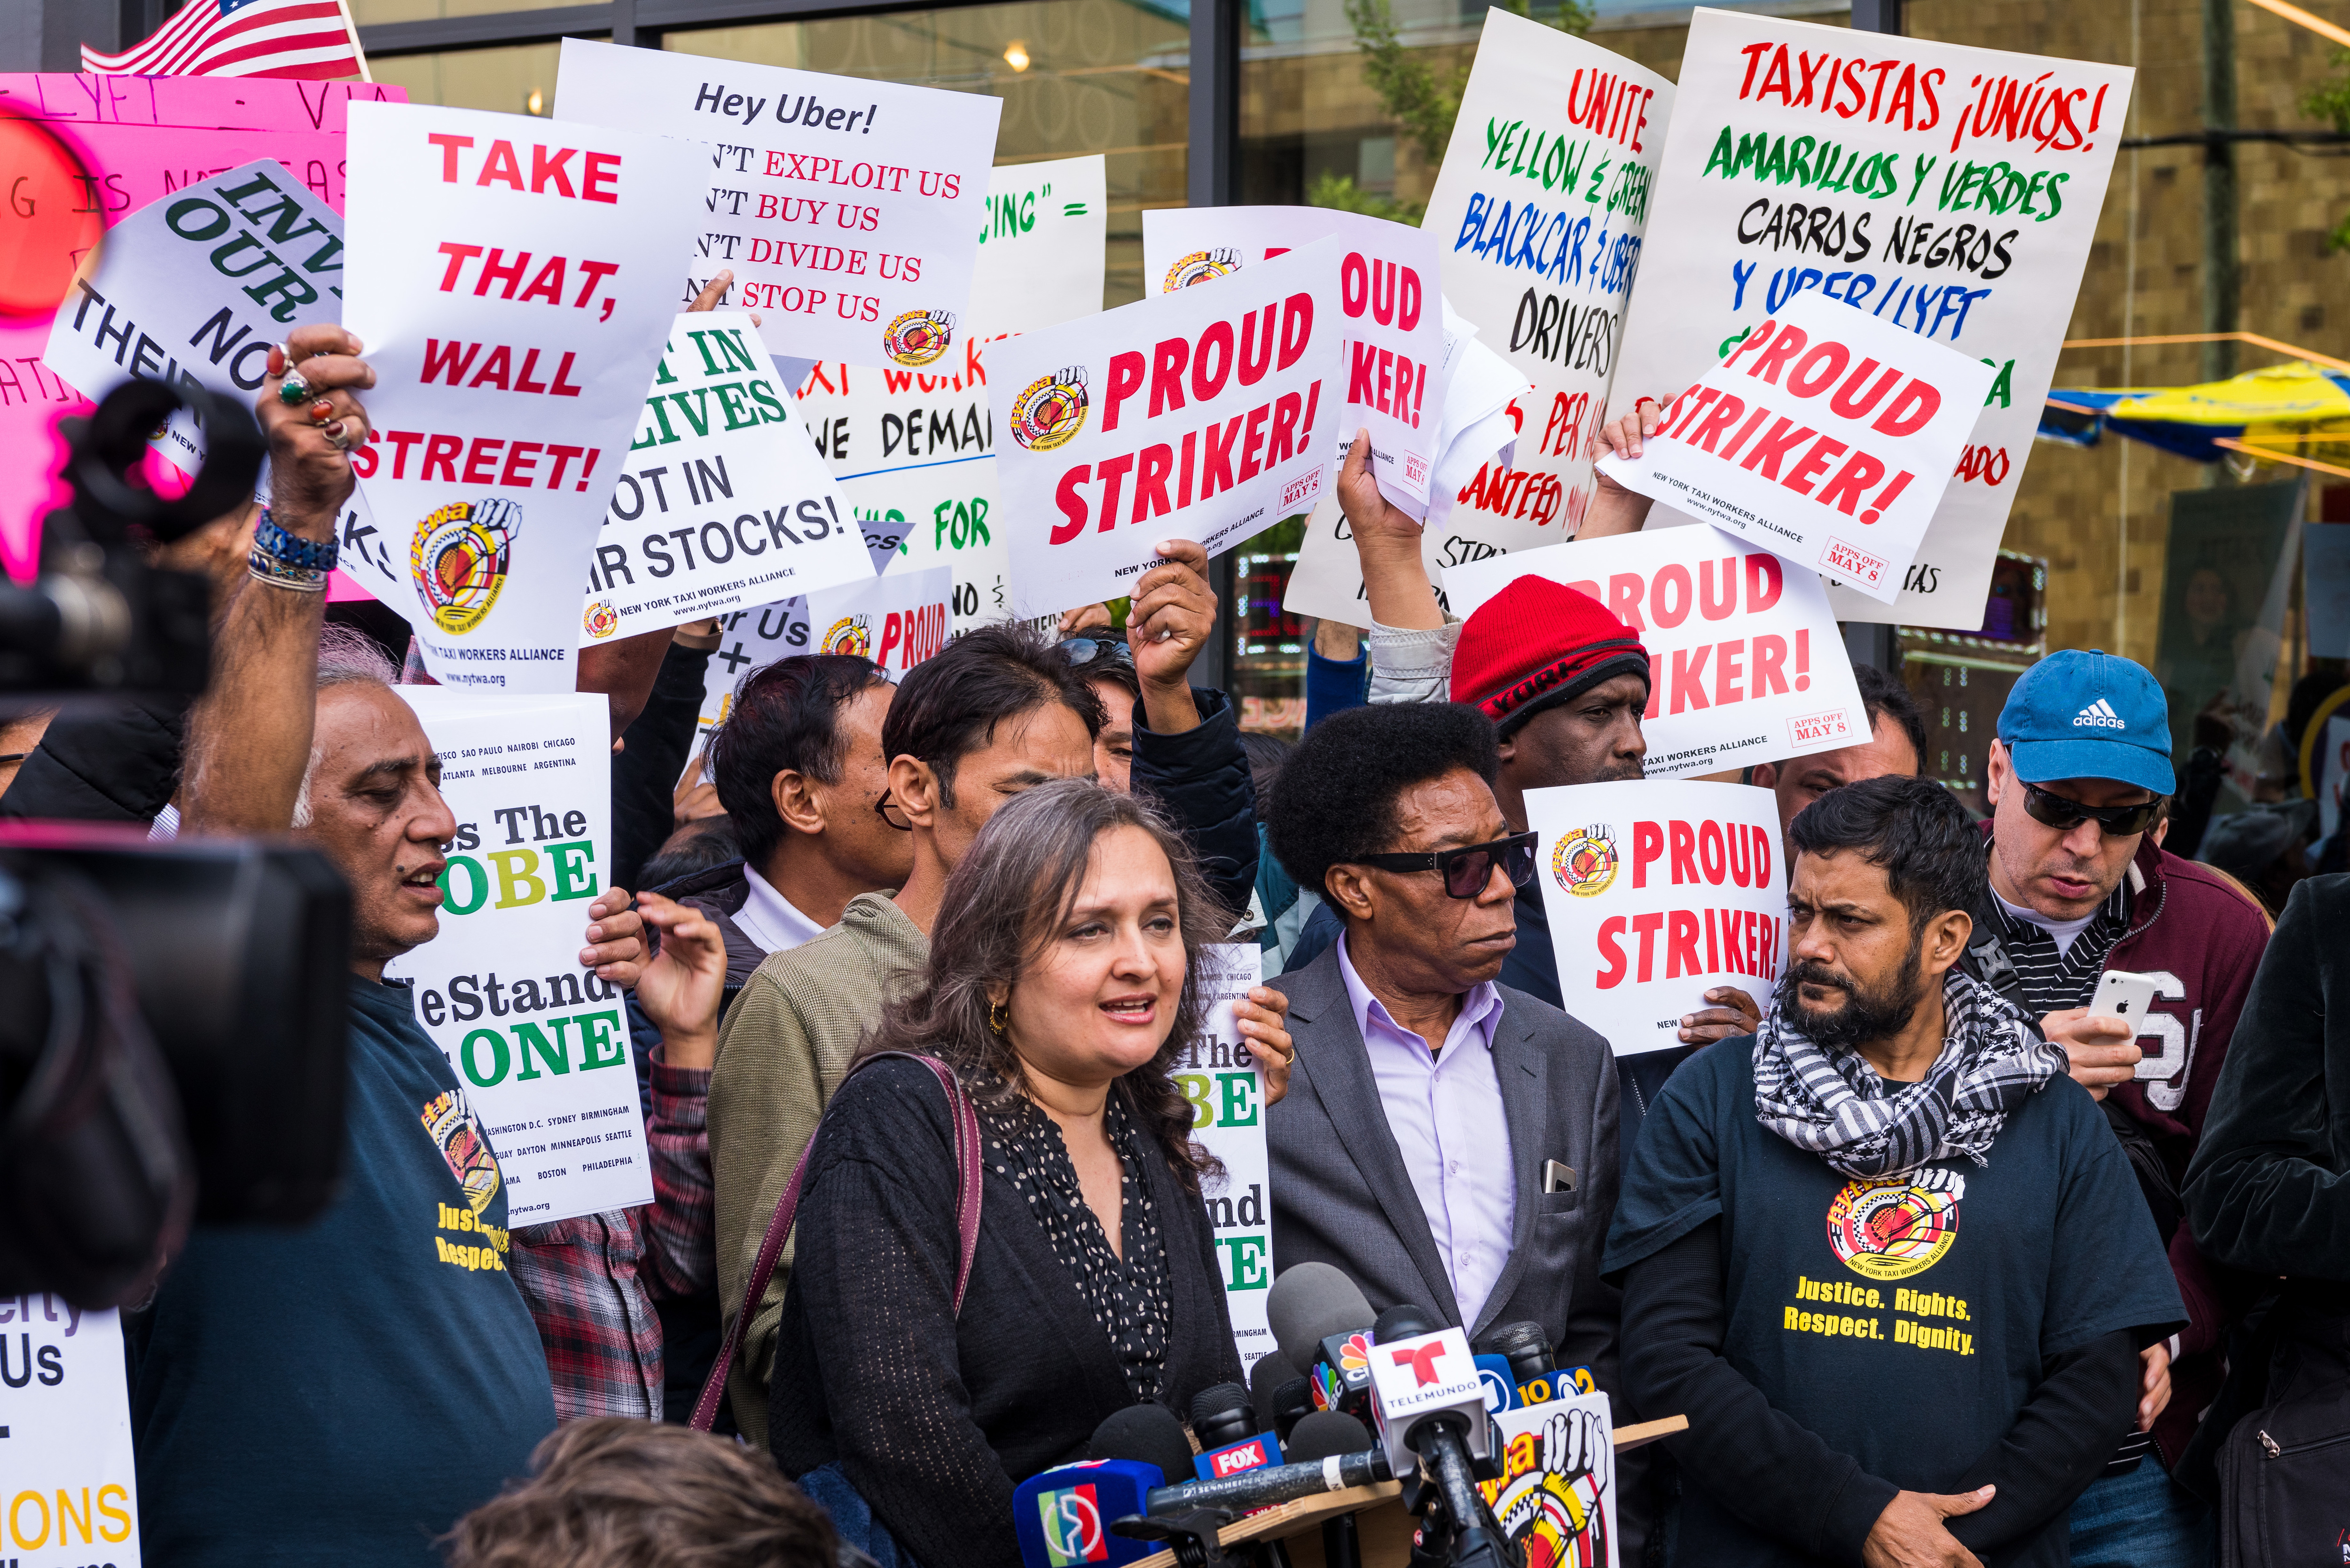 NYC cab drivers rallied in front of the Uber and Lyft